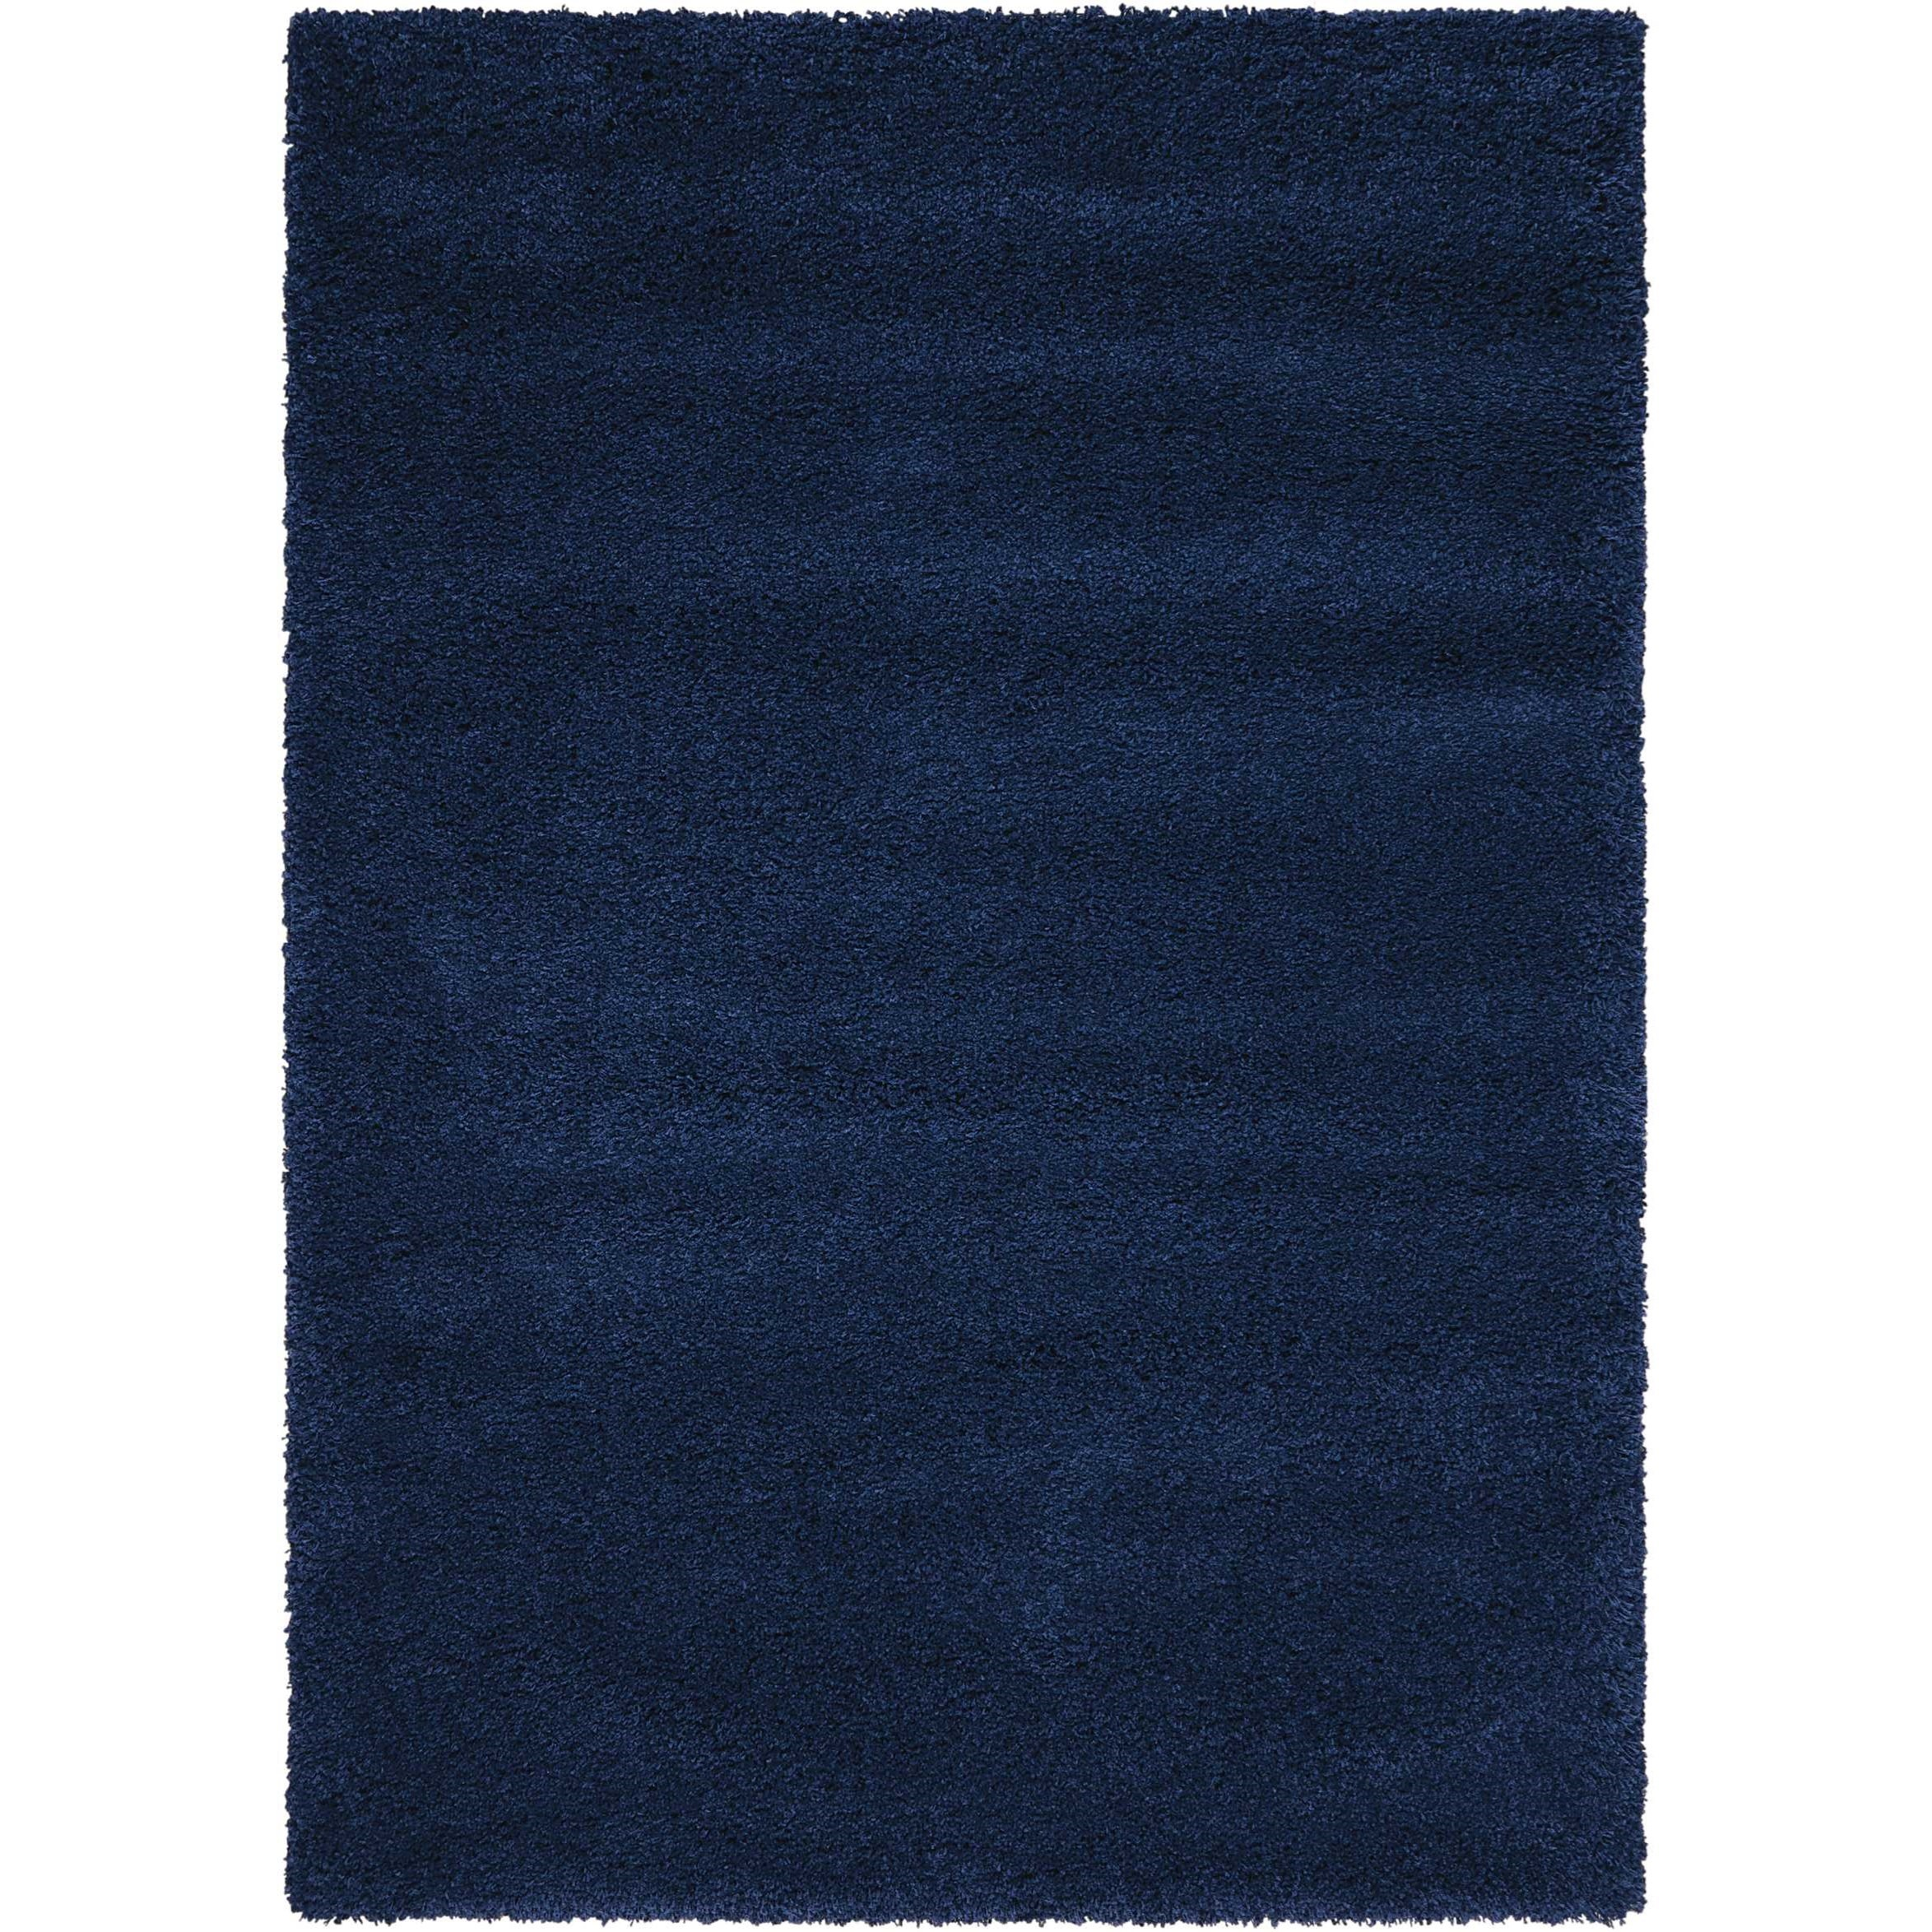 """Amore 3'11"""" x 5'11"""" Ink Rectangle Rug by Nourison at Home Collections Furniture"""